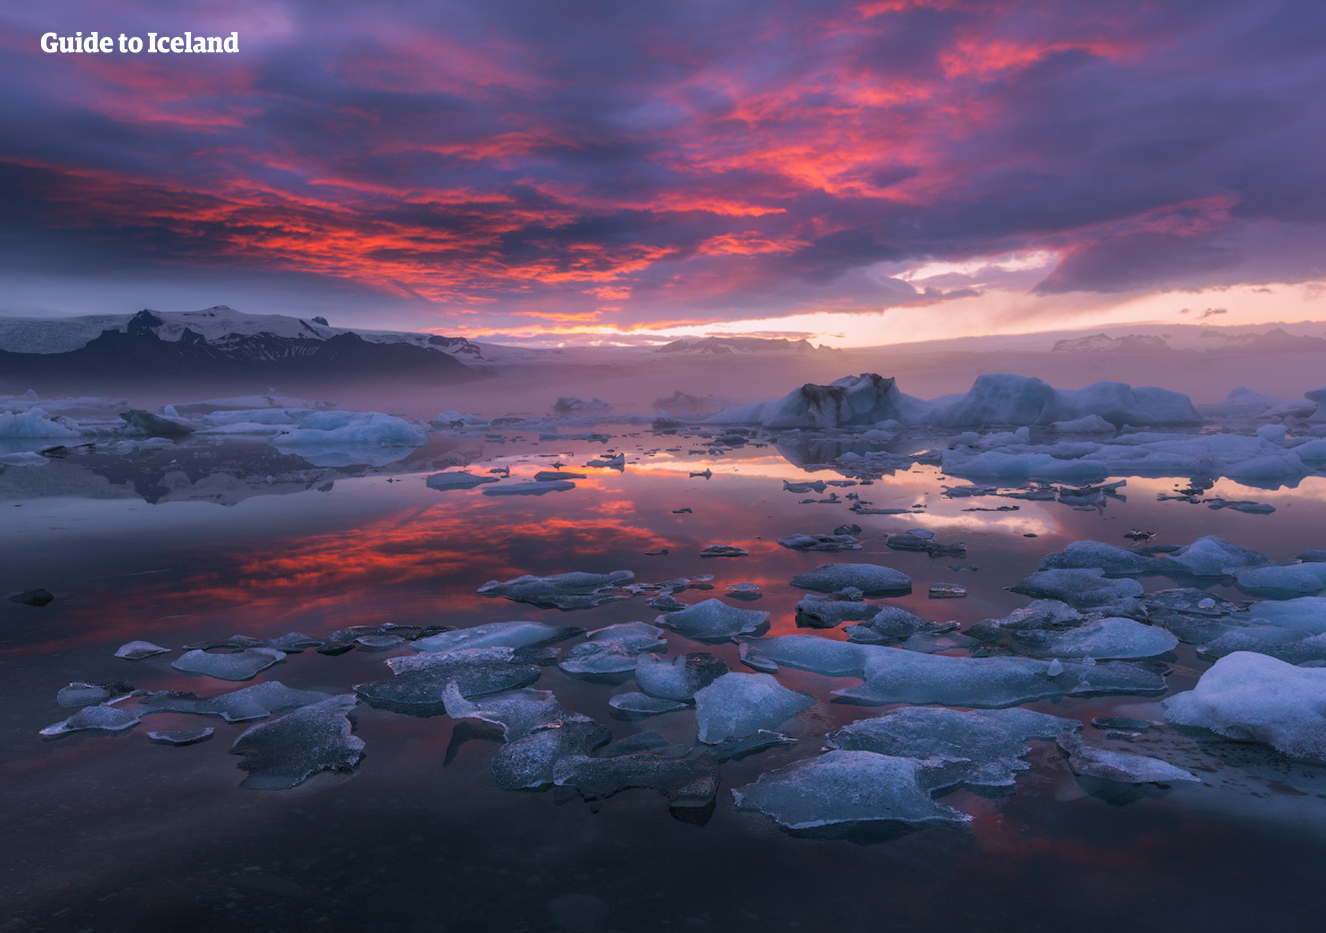 Guided 12 Day Summer Vacation Package of the Complete Ring Road of Iceland with Snaefellsnes Peninsu - day 4